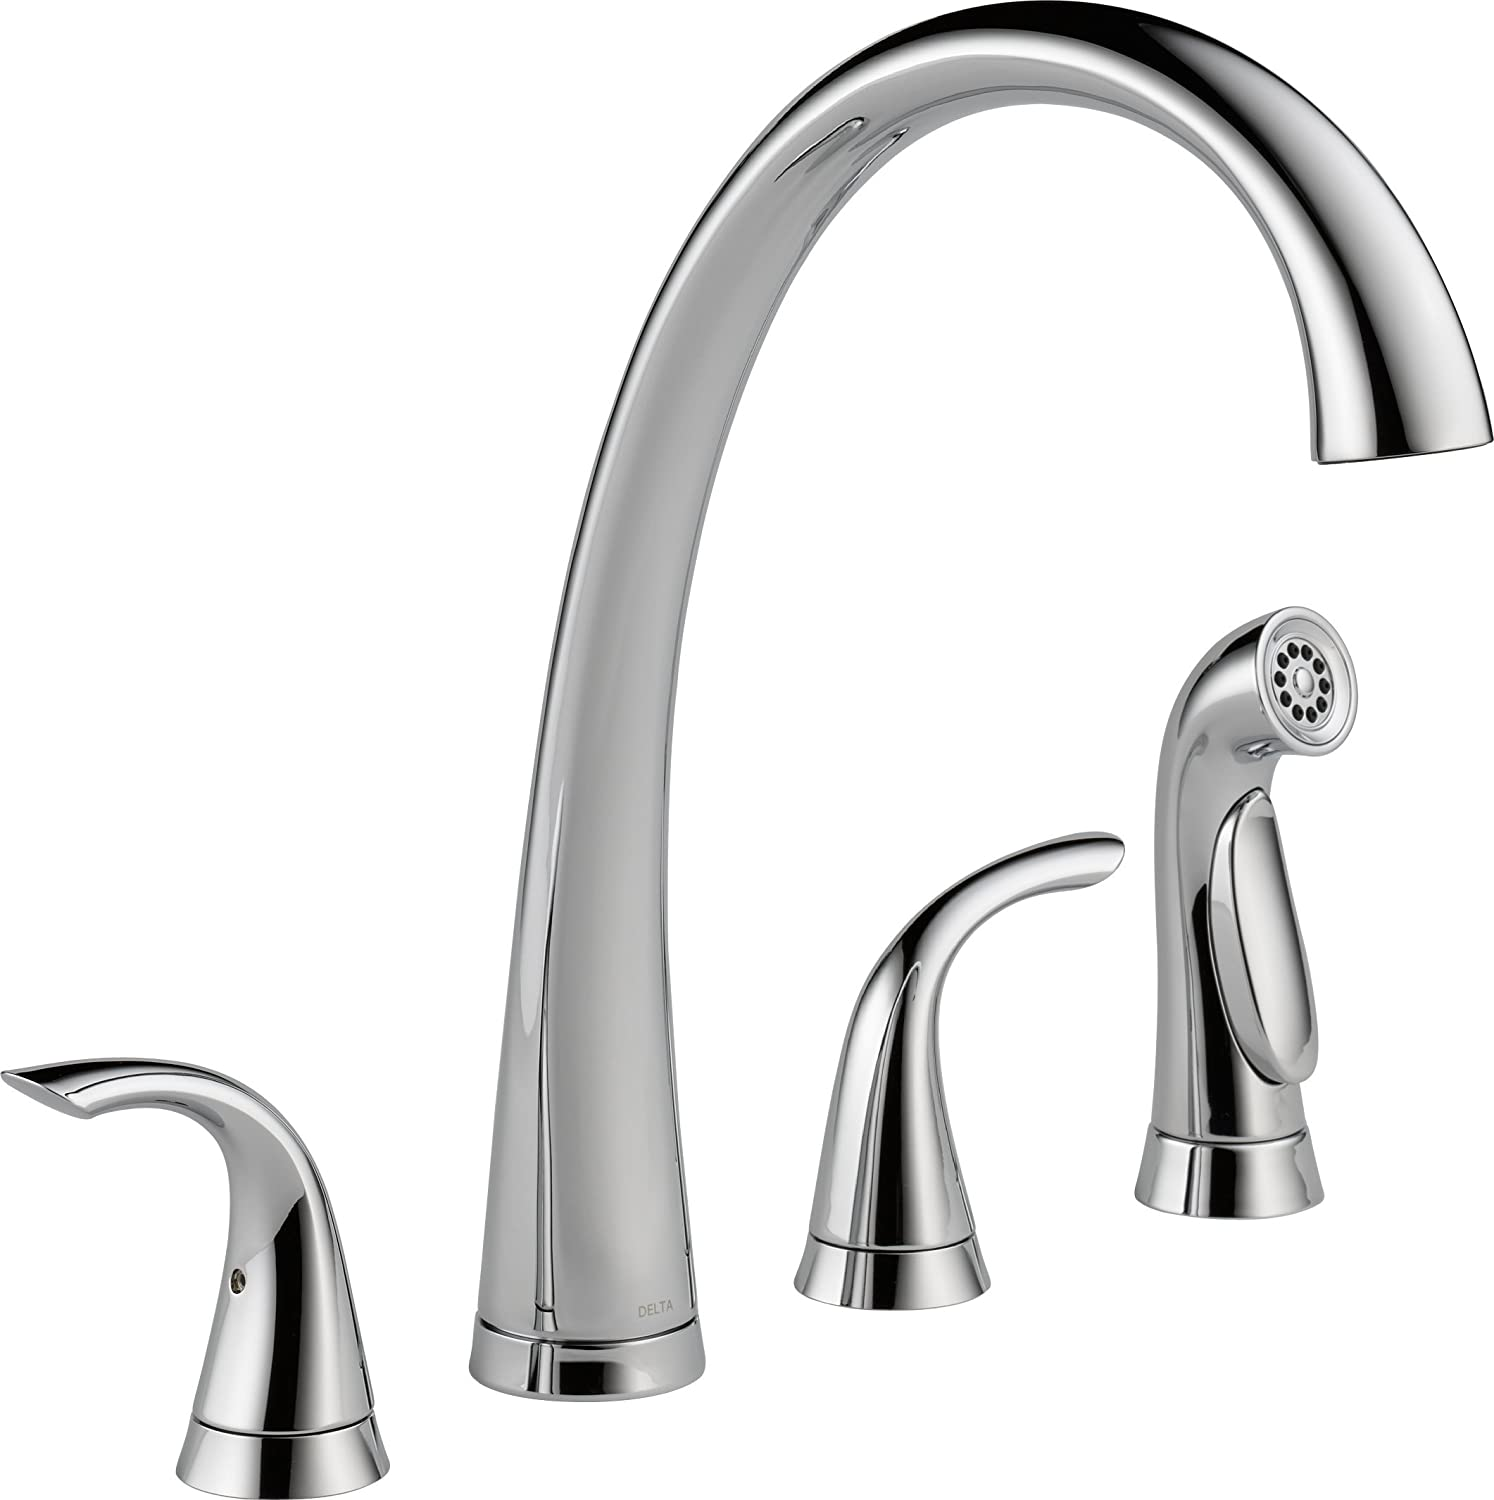 Great Delta Faucet 2480 DST Pillar Two Handle Widespread Kitchen Faucet With  Spray, Chrome   Touch On Kitchen Sink Faucets   Amazon.com